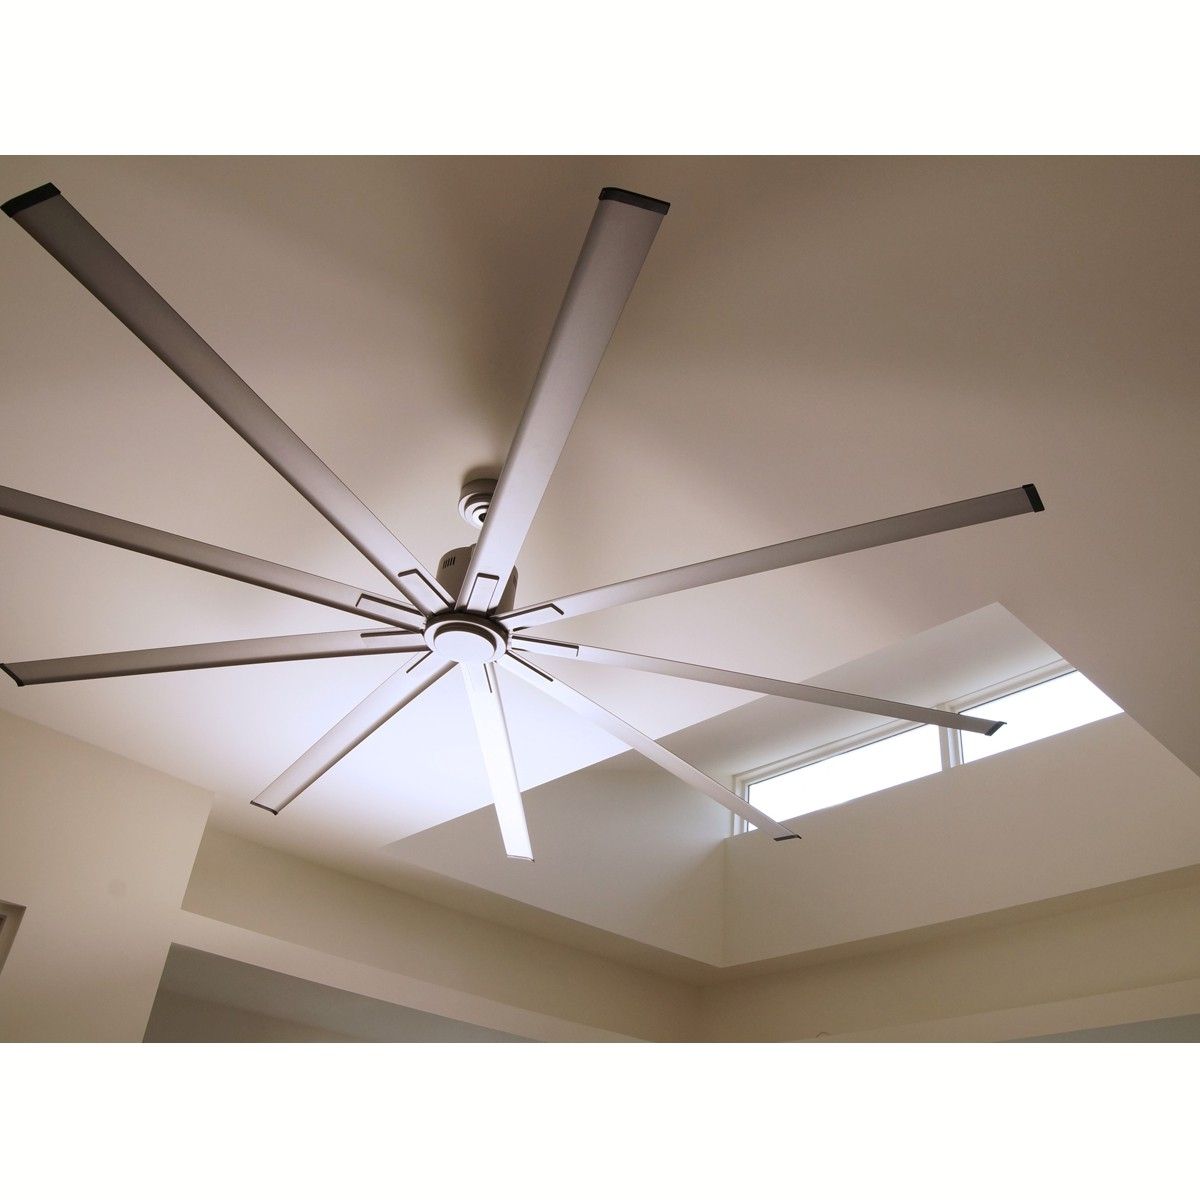 20 72 Ceiling Fan, 72 In 8 Blade Brushed Nickel Led Ceiling Fan With In Famous 72 Predator Bronze Outdoor Ceiling Fans With Light Kit (View 1 of 20)